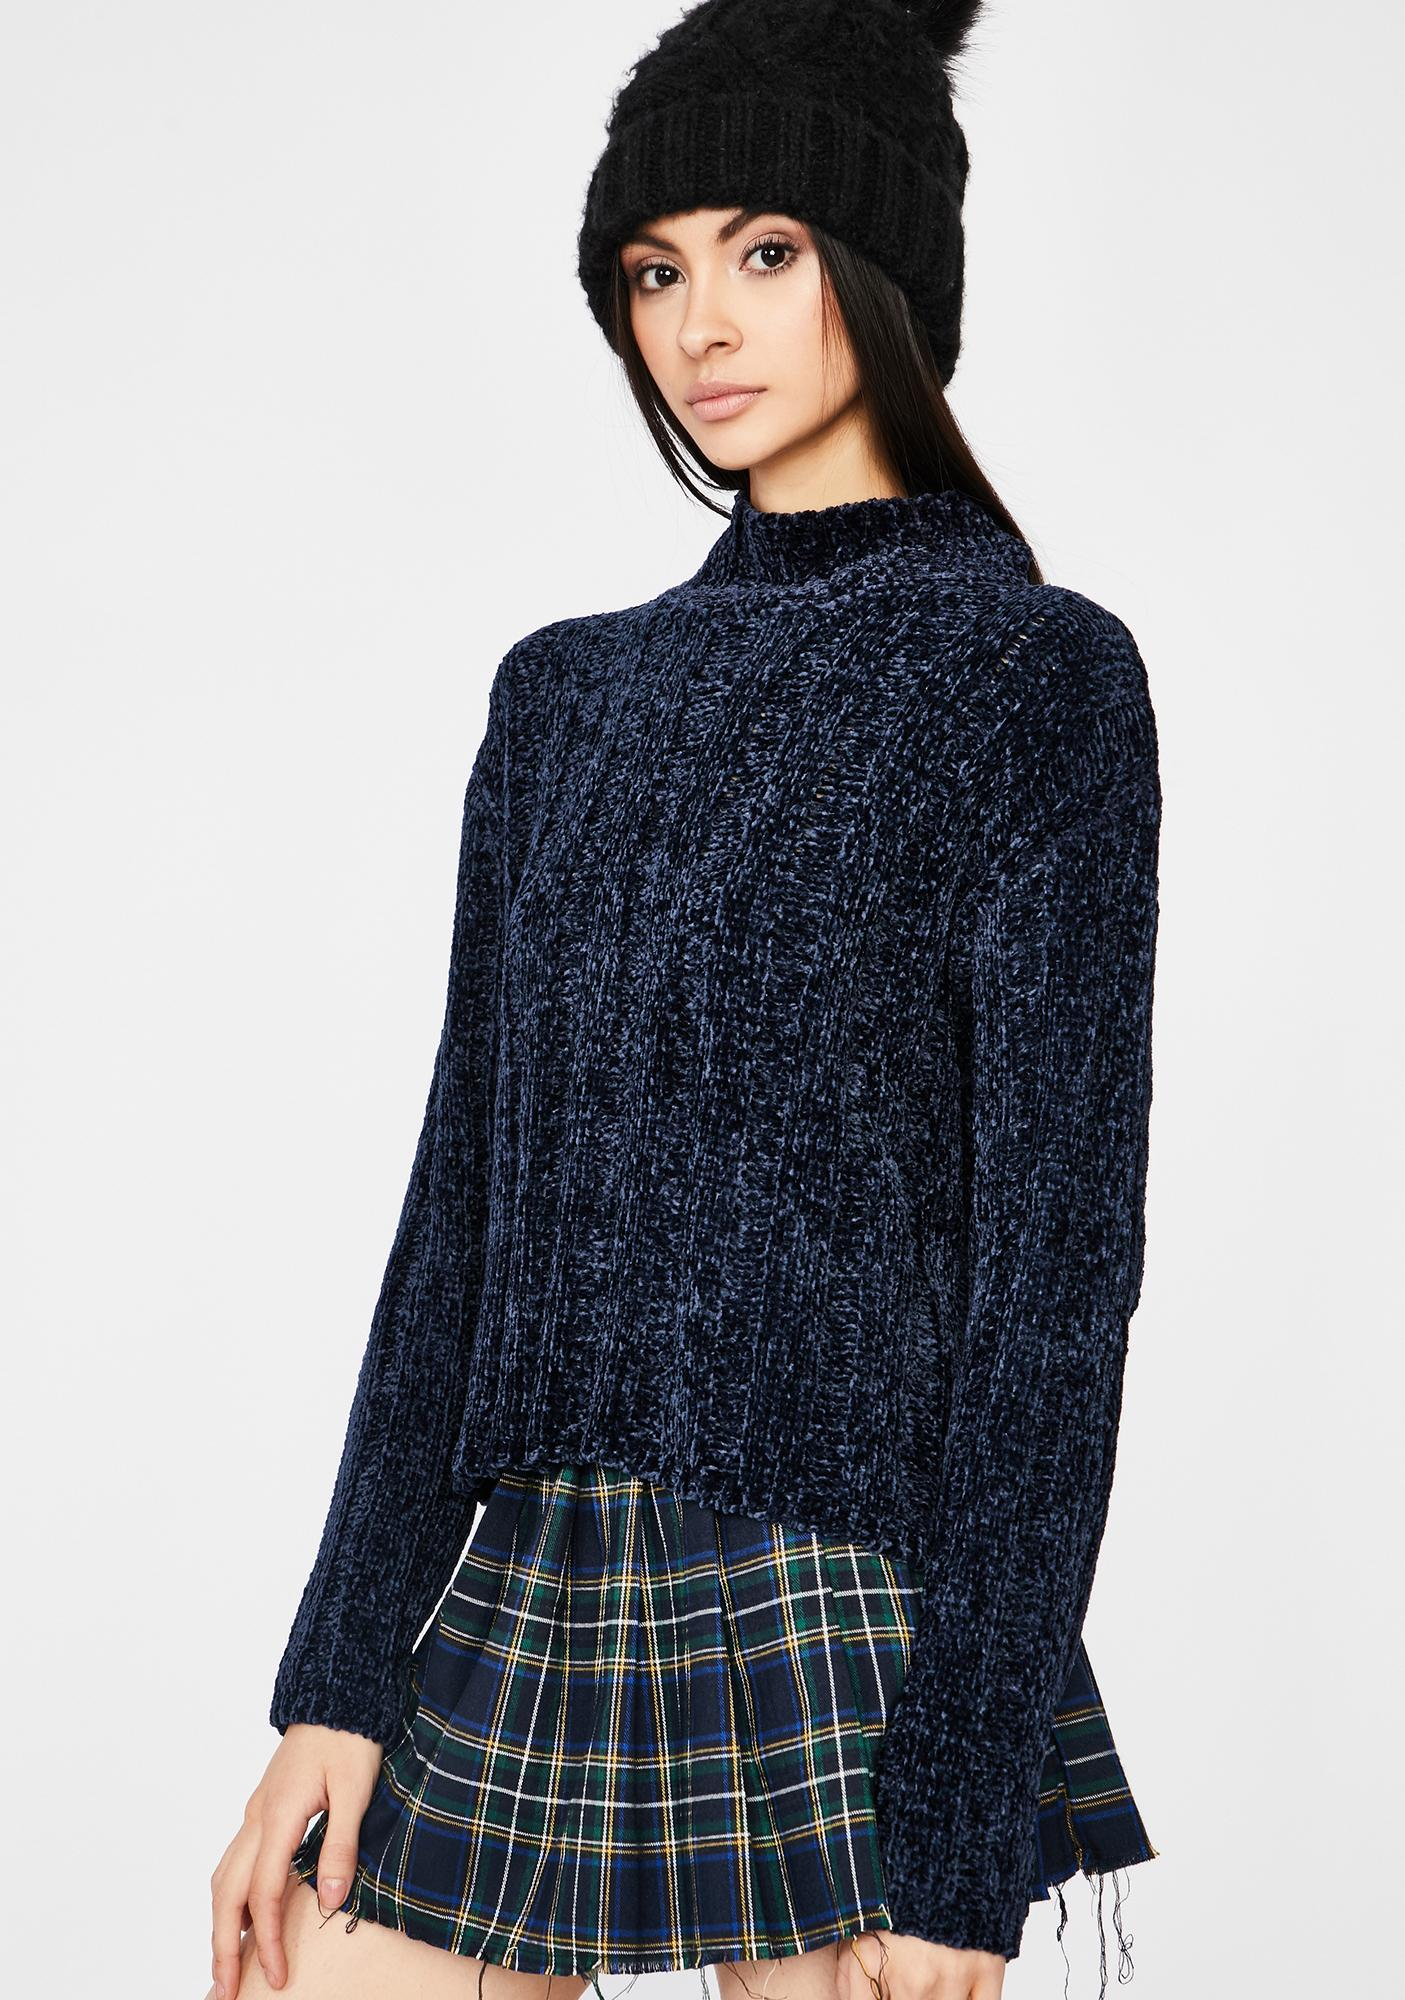 Dark Guilty Promise Knit Sweater